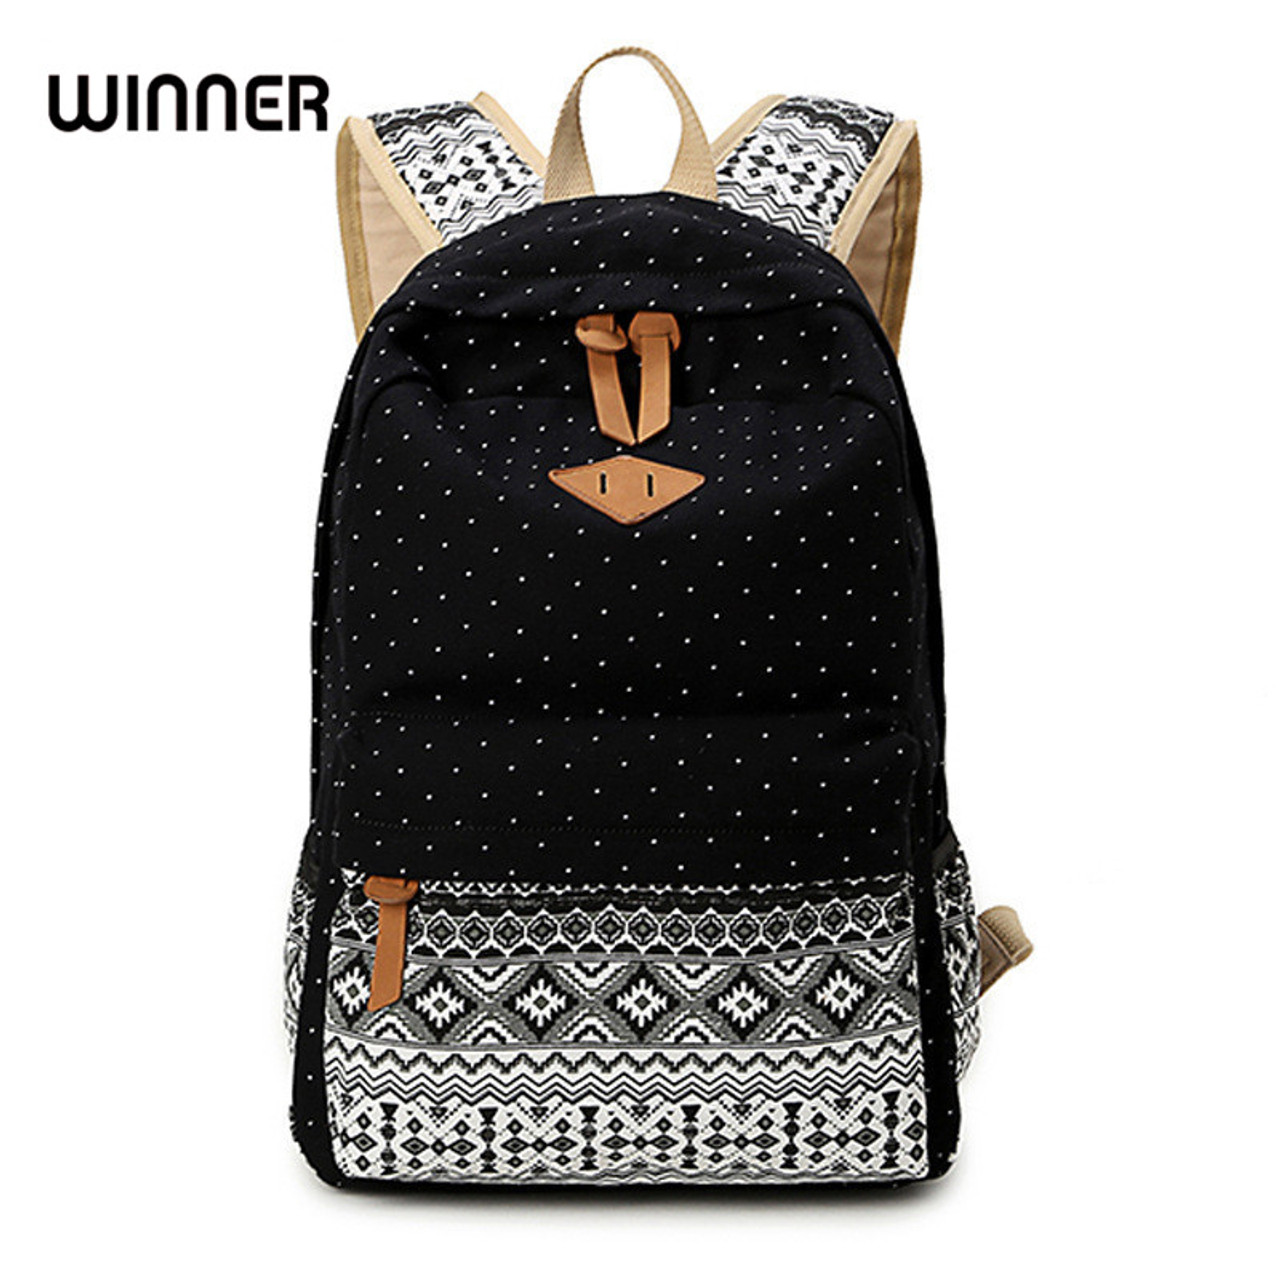 5f68ff1835 Canvas Printing Backpack Women School Backpacks Bag for Teenage Girls  Vintage Laptop Rucksack Bagpack Female Schoolbag ...